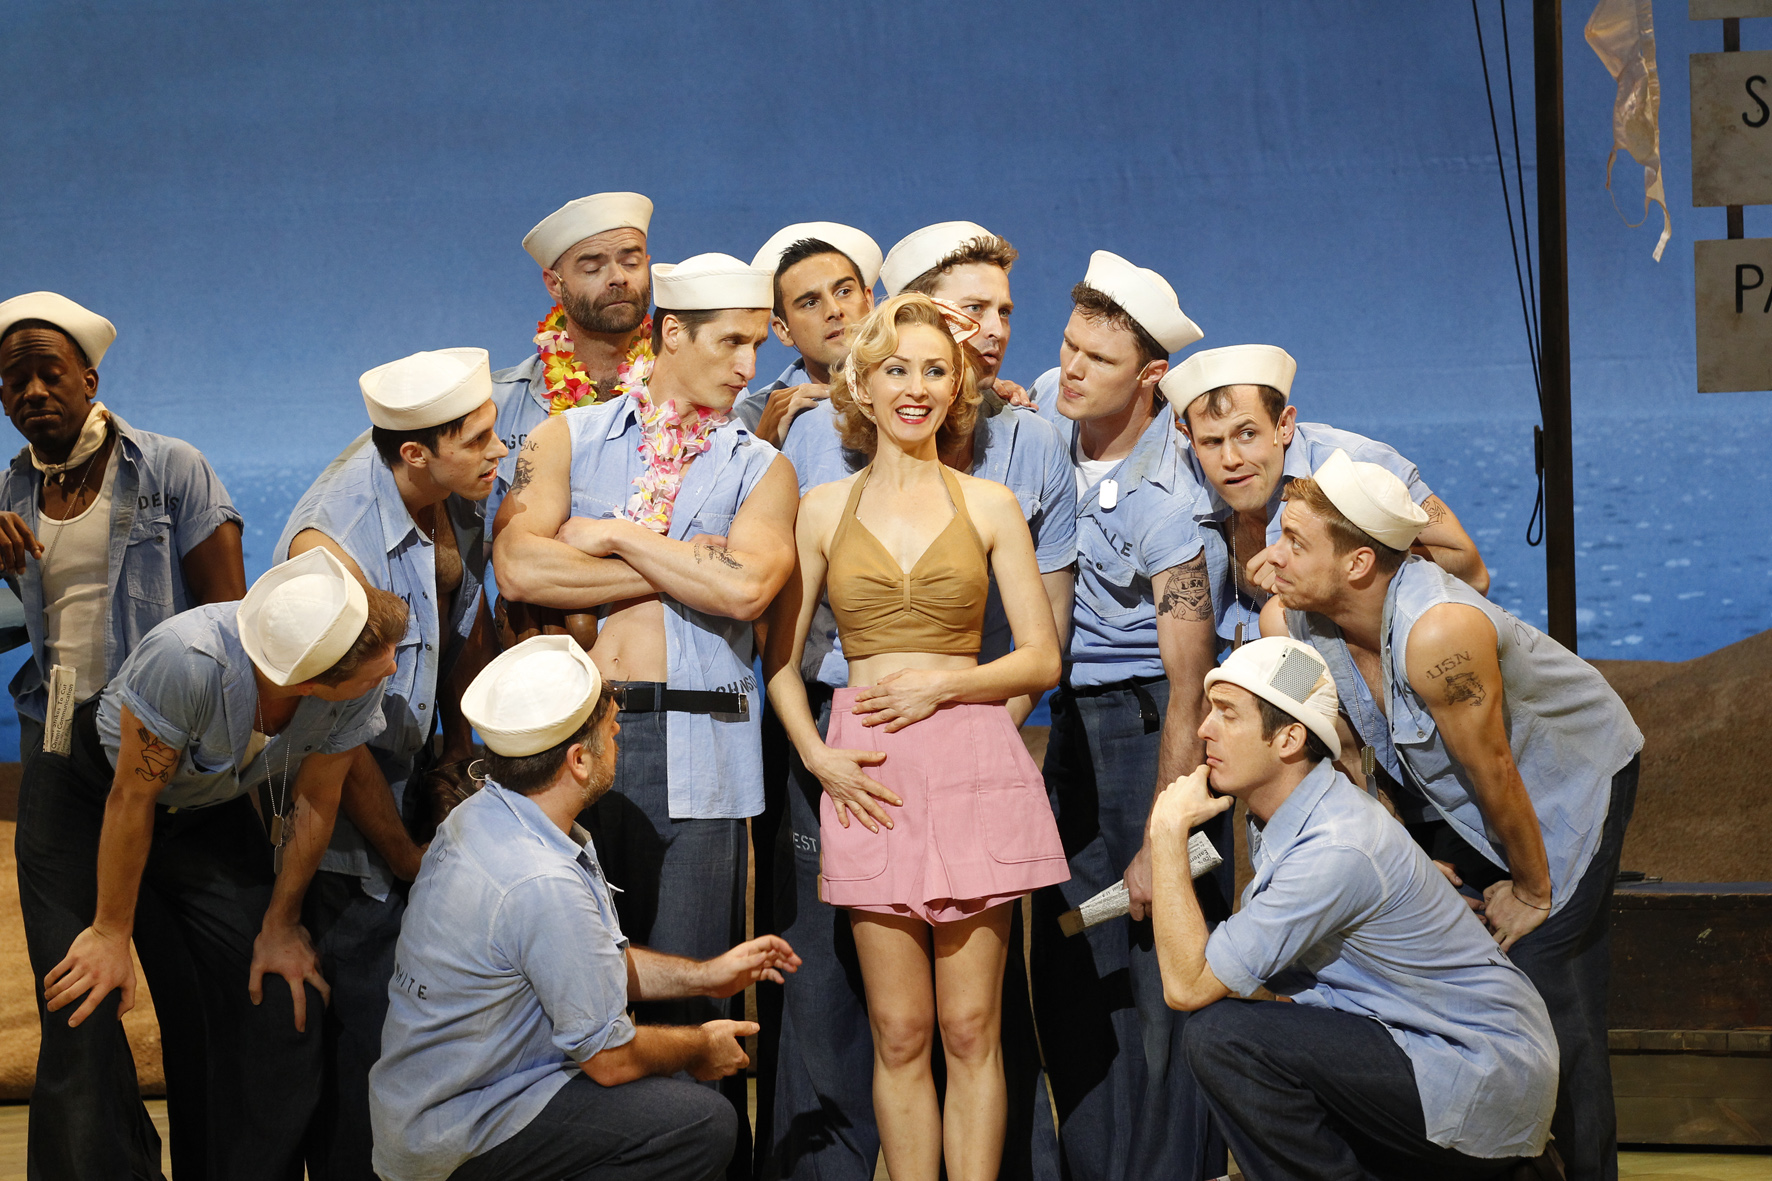 South Pacific Review Simon Parris Man In Chair